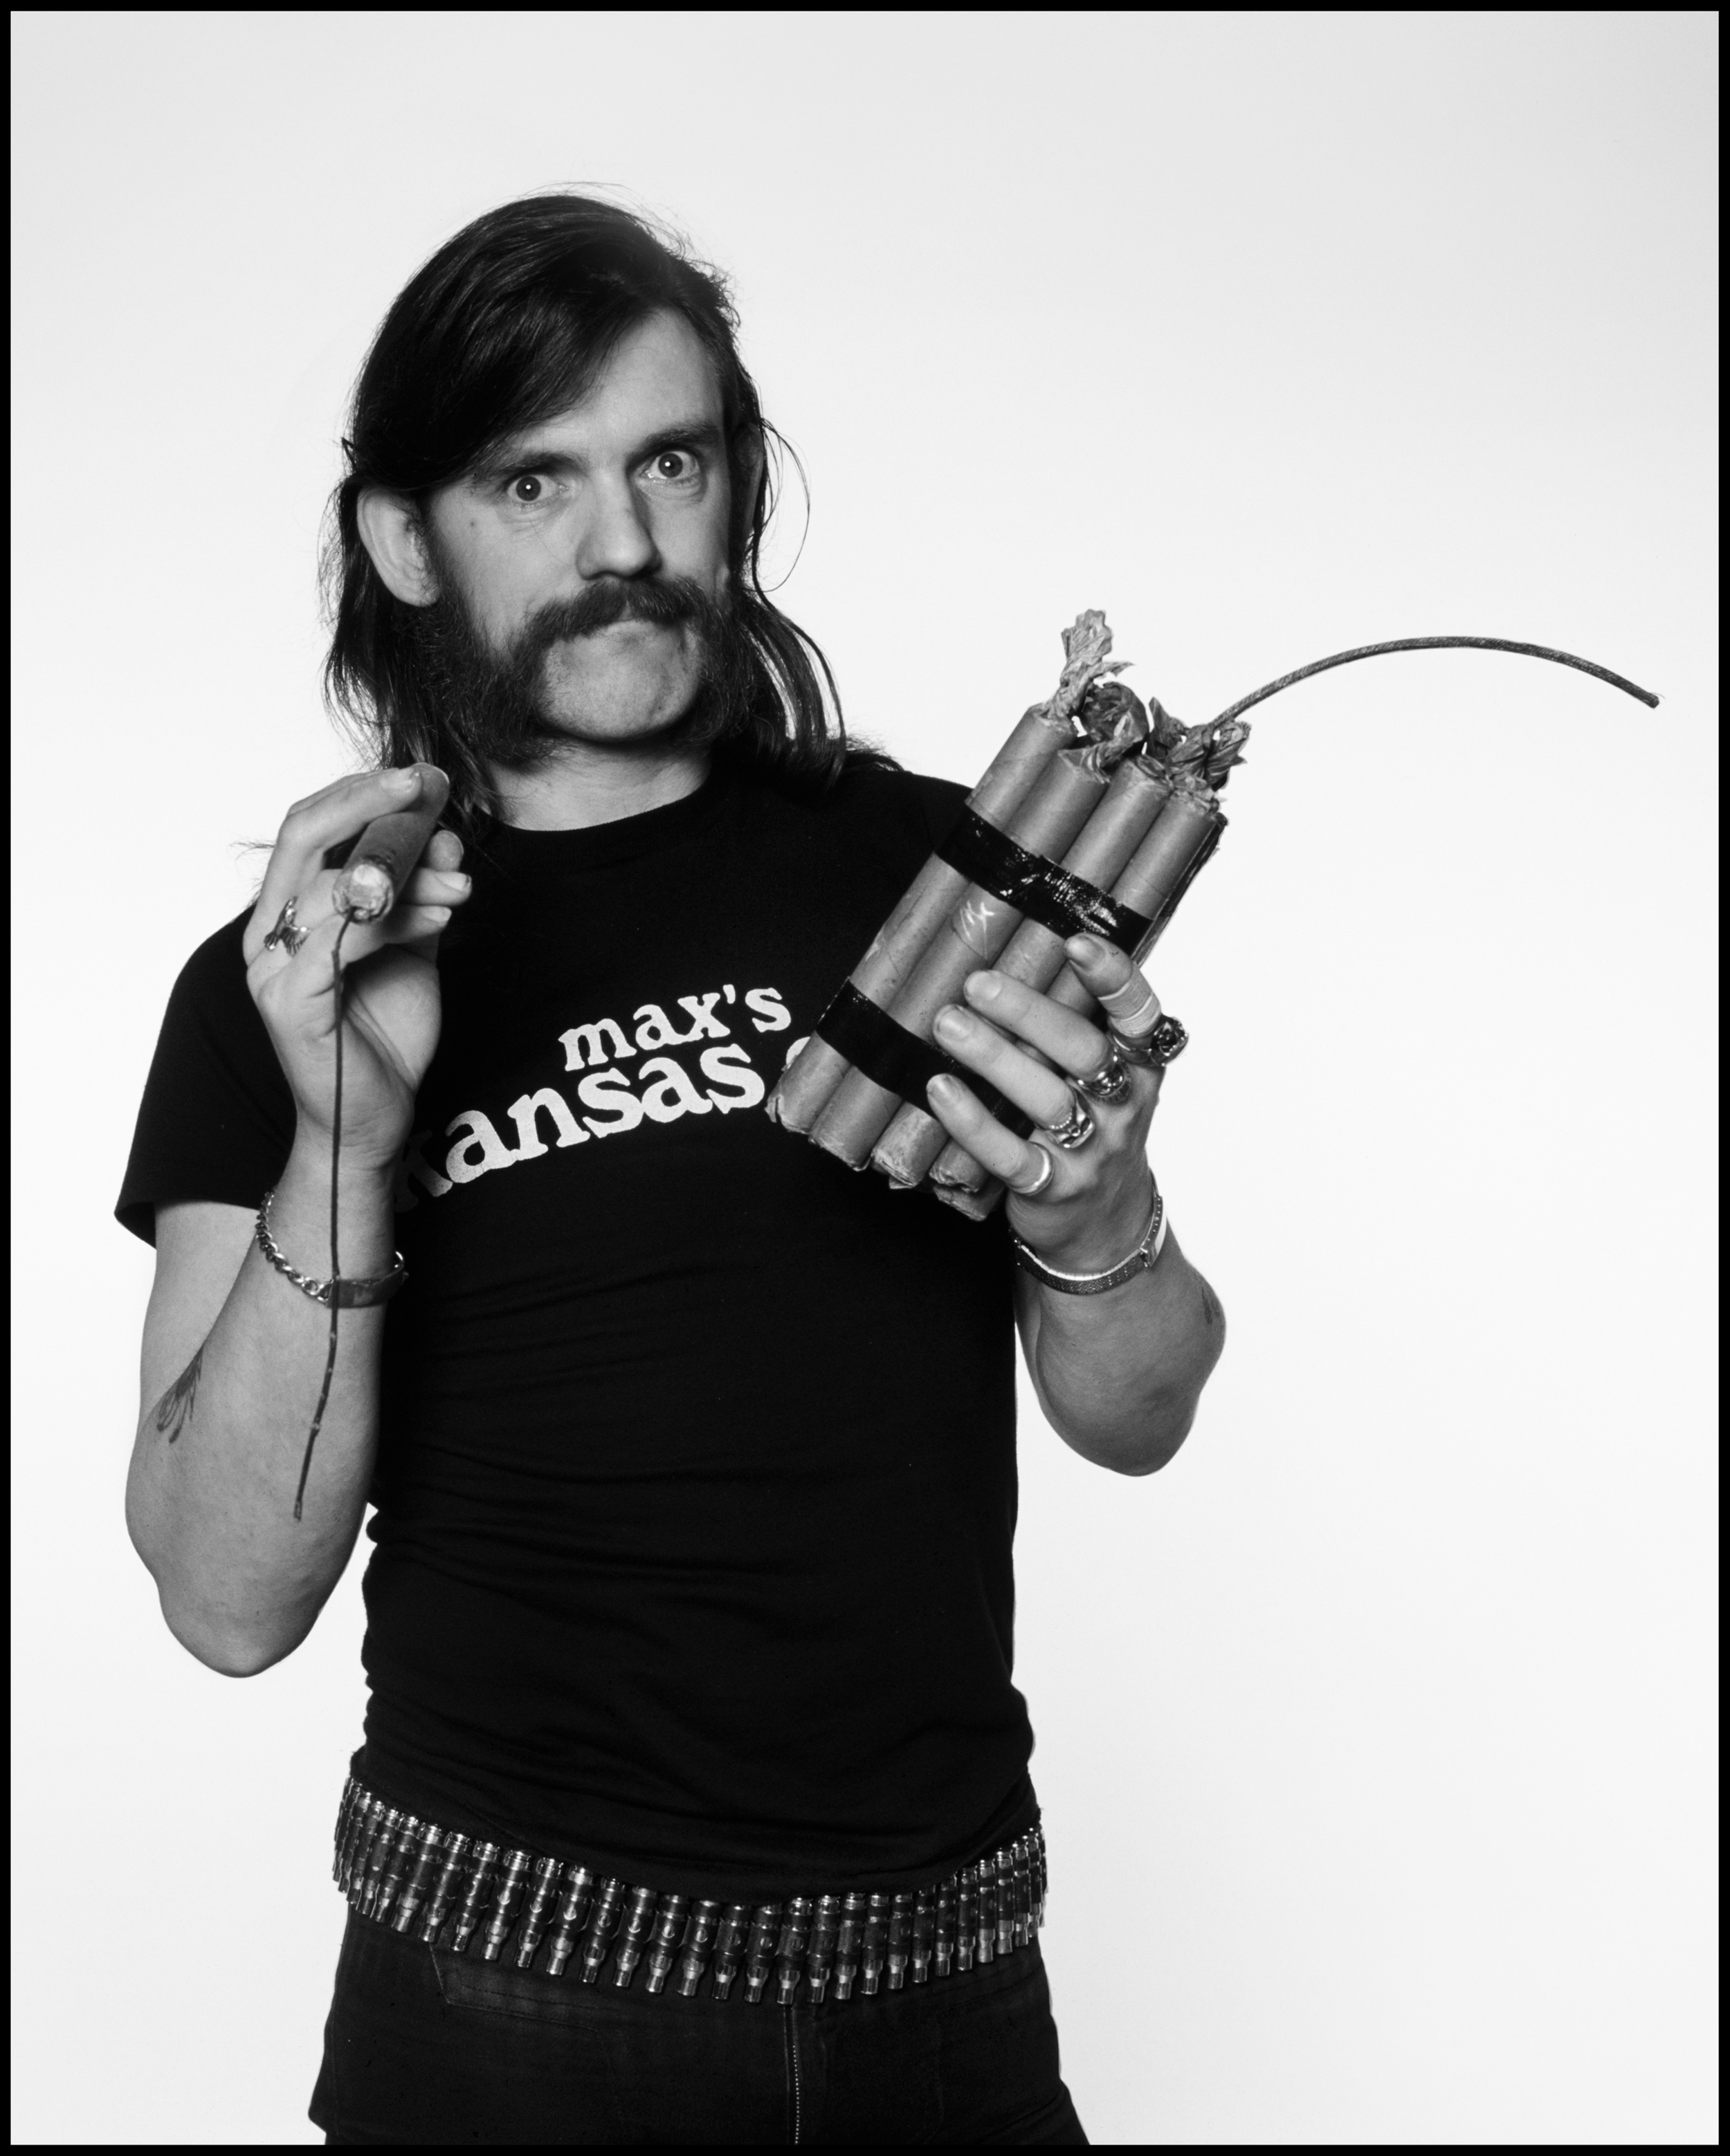 Lemmy - London 1984  I think I first came across Lemmy in 1971 when he was in Hawkwind, he was someone you often saw in Ladbroke Grove or at the Marquee and other watering holes around town, as he was best mates with Mick Farren he became a regular visitor to the NME offices in '75 and '76 before he formed Motörhead.  In fact I reviewed Motörhead's first gig at the Marquee in 1977 for the NME and whilst I saw potential in the Uriah Heep/Black Sabbath area I would never have thought they would have been as successful as they became, let alone expect that they would still be going strong thirty five years later.  Lemmy is a gruff, slightly imposing, yet adorable kind of a Rock Star, quite malleable too, always happy to oblige when one needs a quick photo for a Magazine.  This picture was originally shot for the cover of Time Out in 1984 and the 'session' lasted about ten minutes. Lemmy arrived, took off his leather jacket, grabbed the fake dynamite and stepped into the studio grinning. He then did 24 assorted poses, giving me everything I needed on exactly two rolls of film.  Knowing that all good photographers were skilled in the art of quick shoots, he put the dynamite down, put his leather jacket back on and left the building.